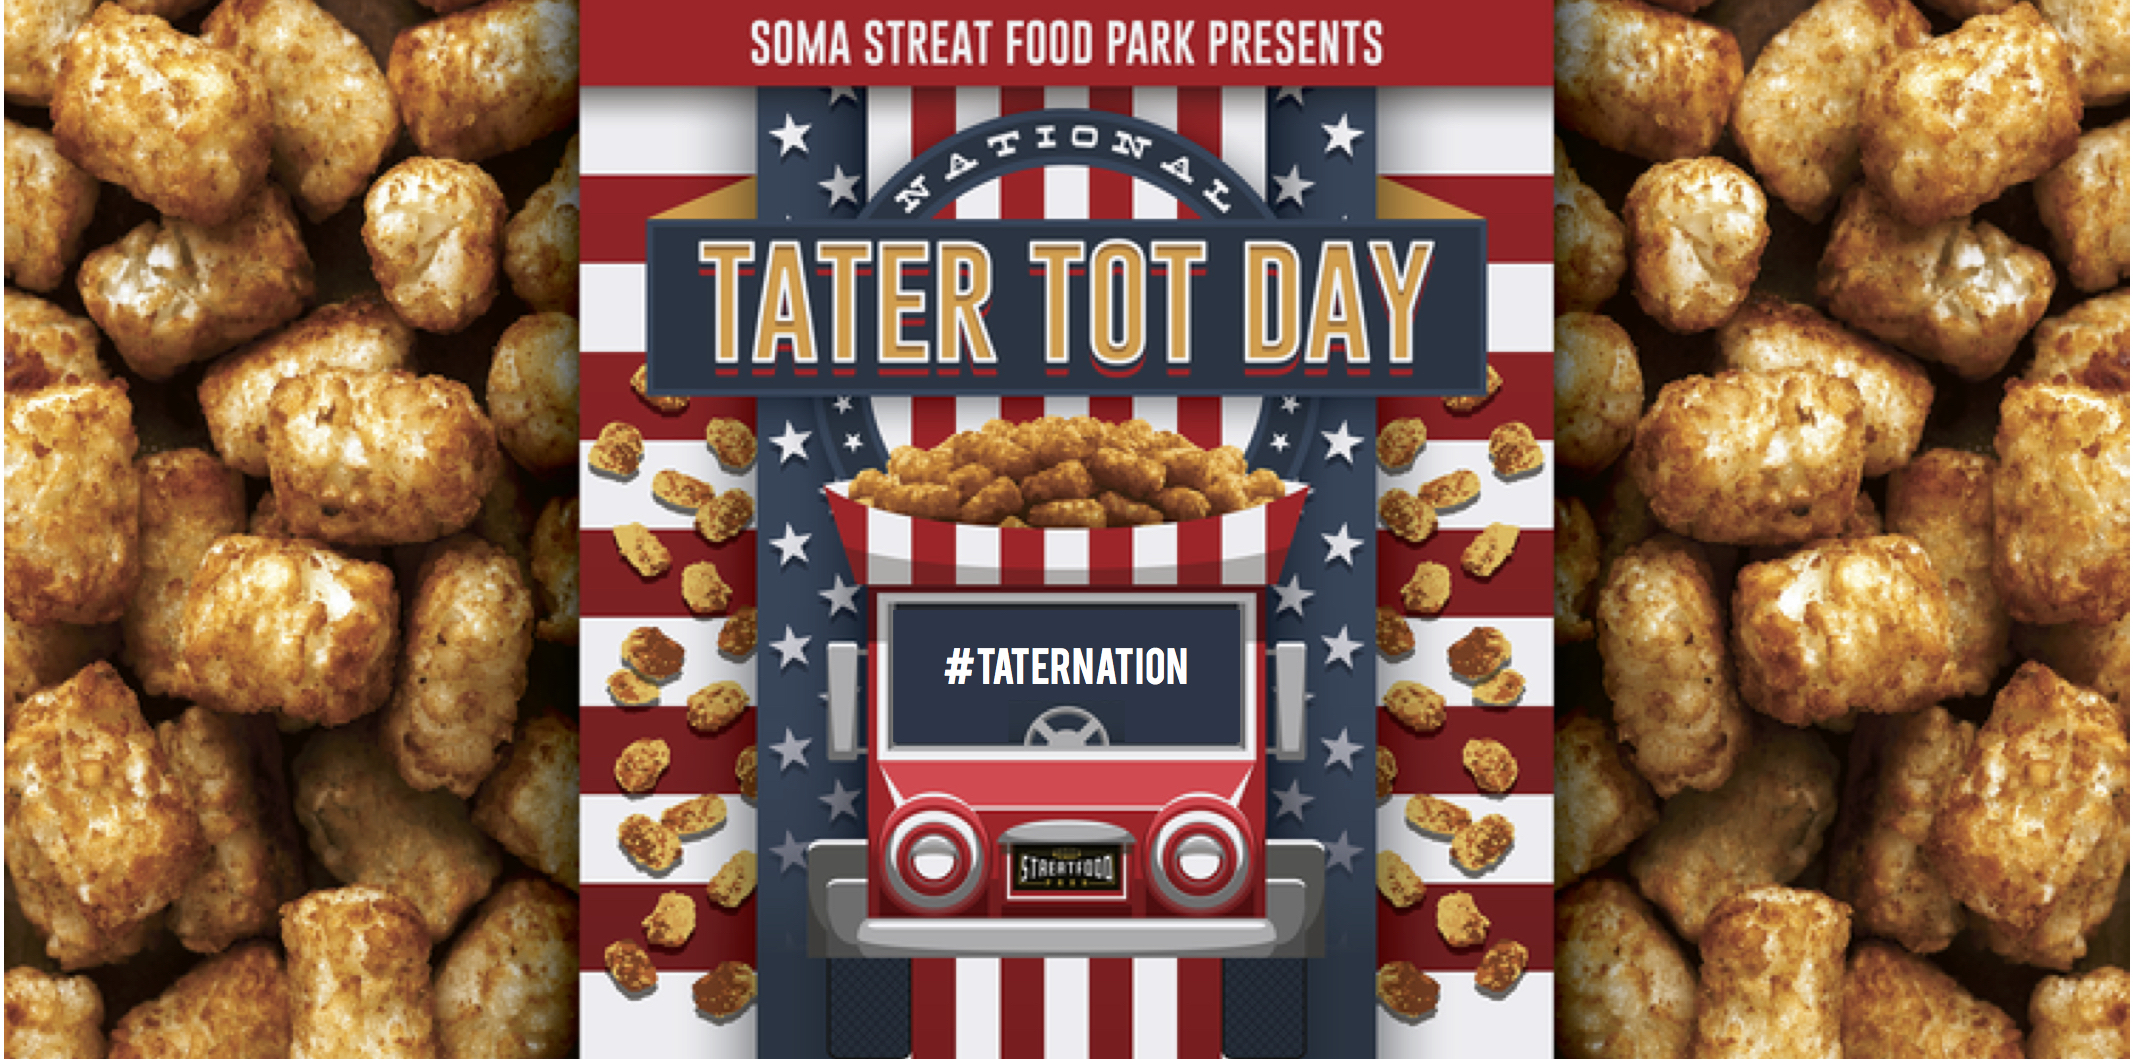 02.03.2018 National Tater Tot Day Eventbrite.jpg